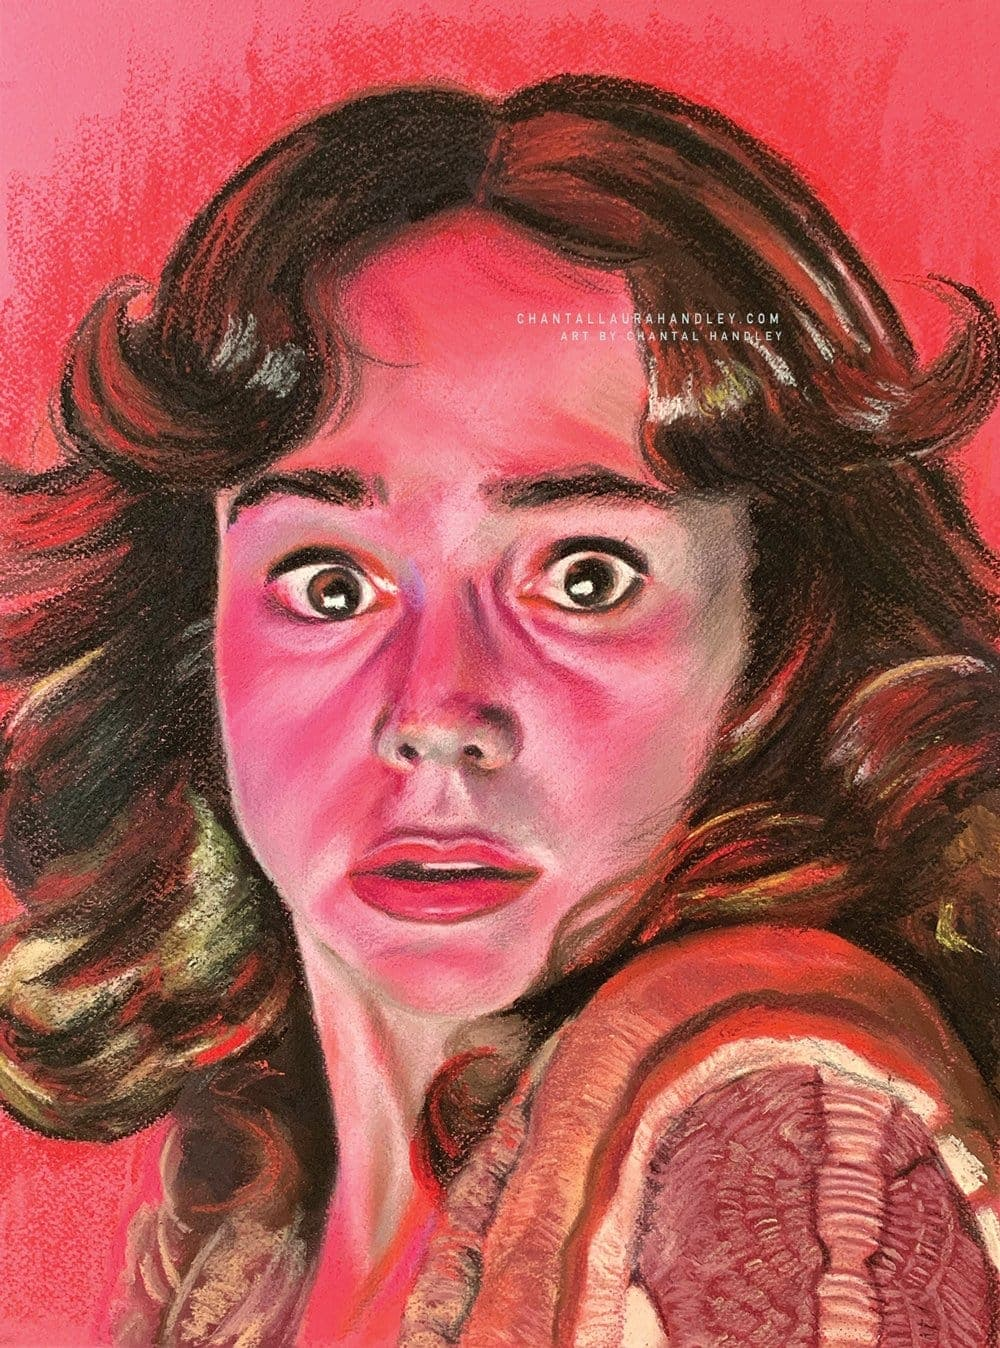 SUSPIRIA - Suzy Bannion - Art Print - ChantalLauraHandley